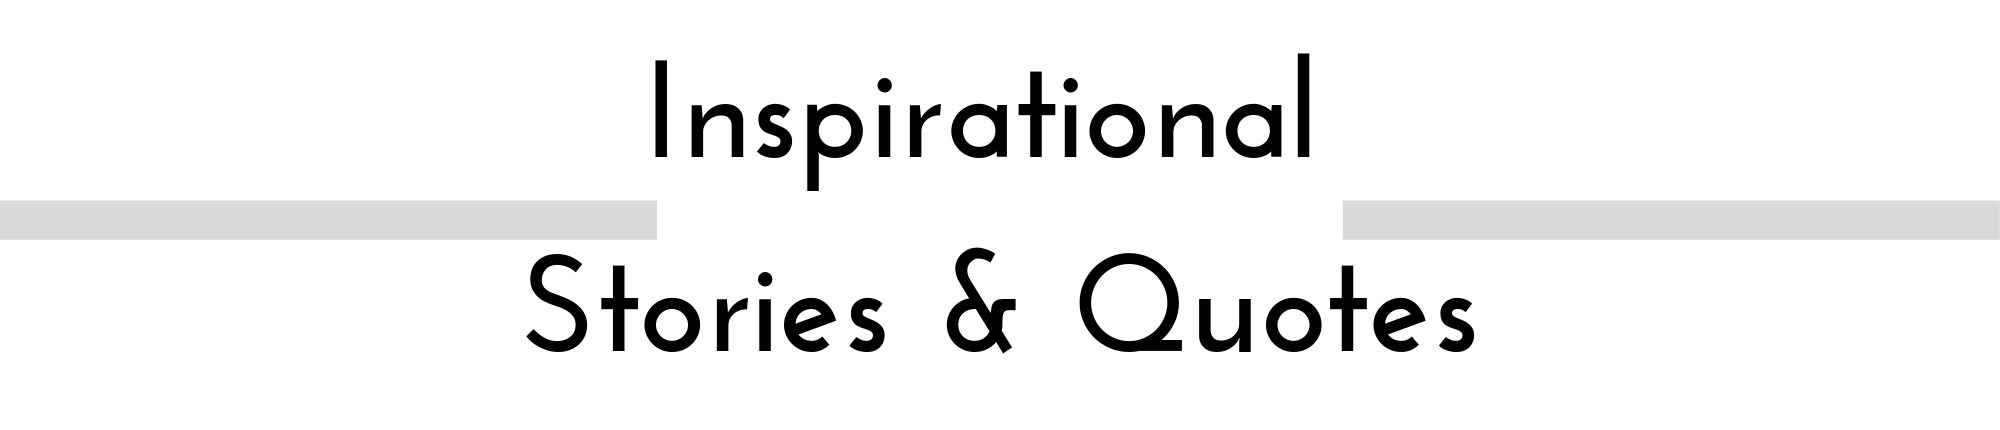 Inspirational Stories & Quotes